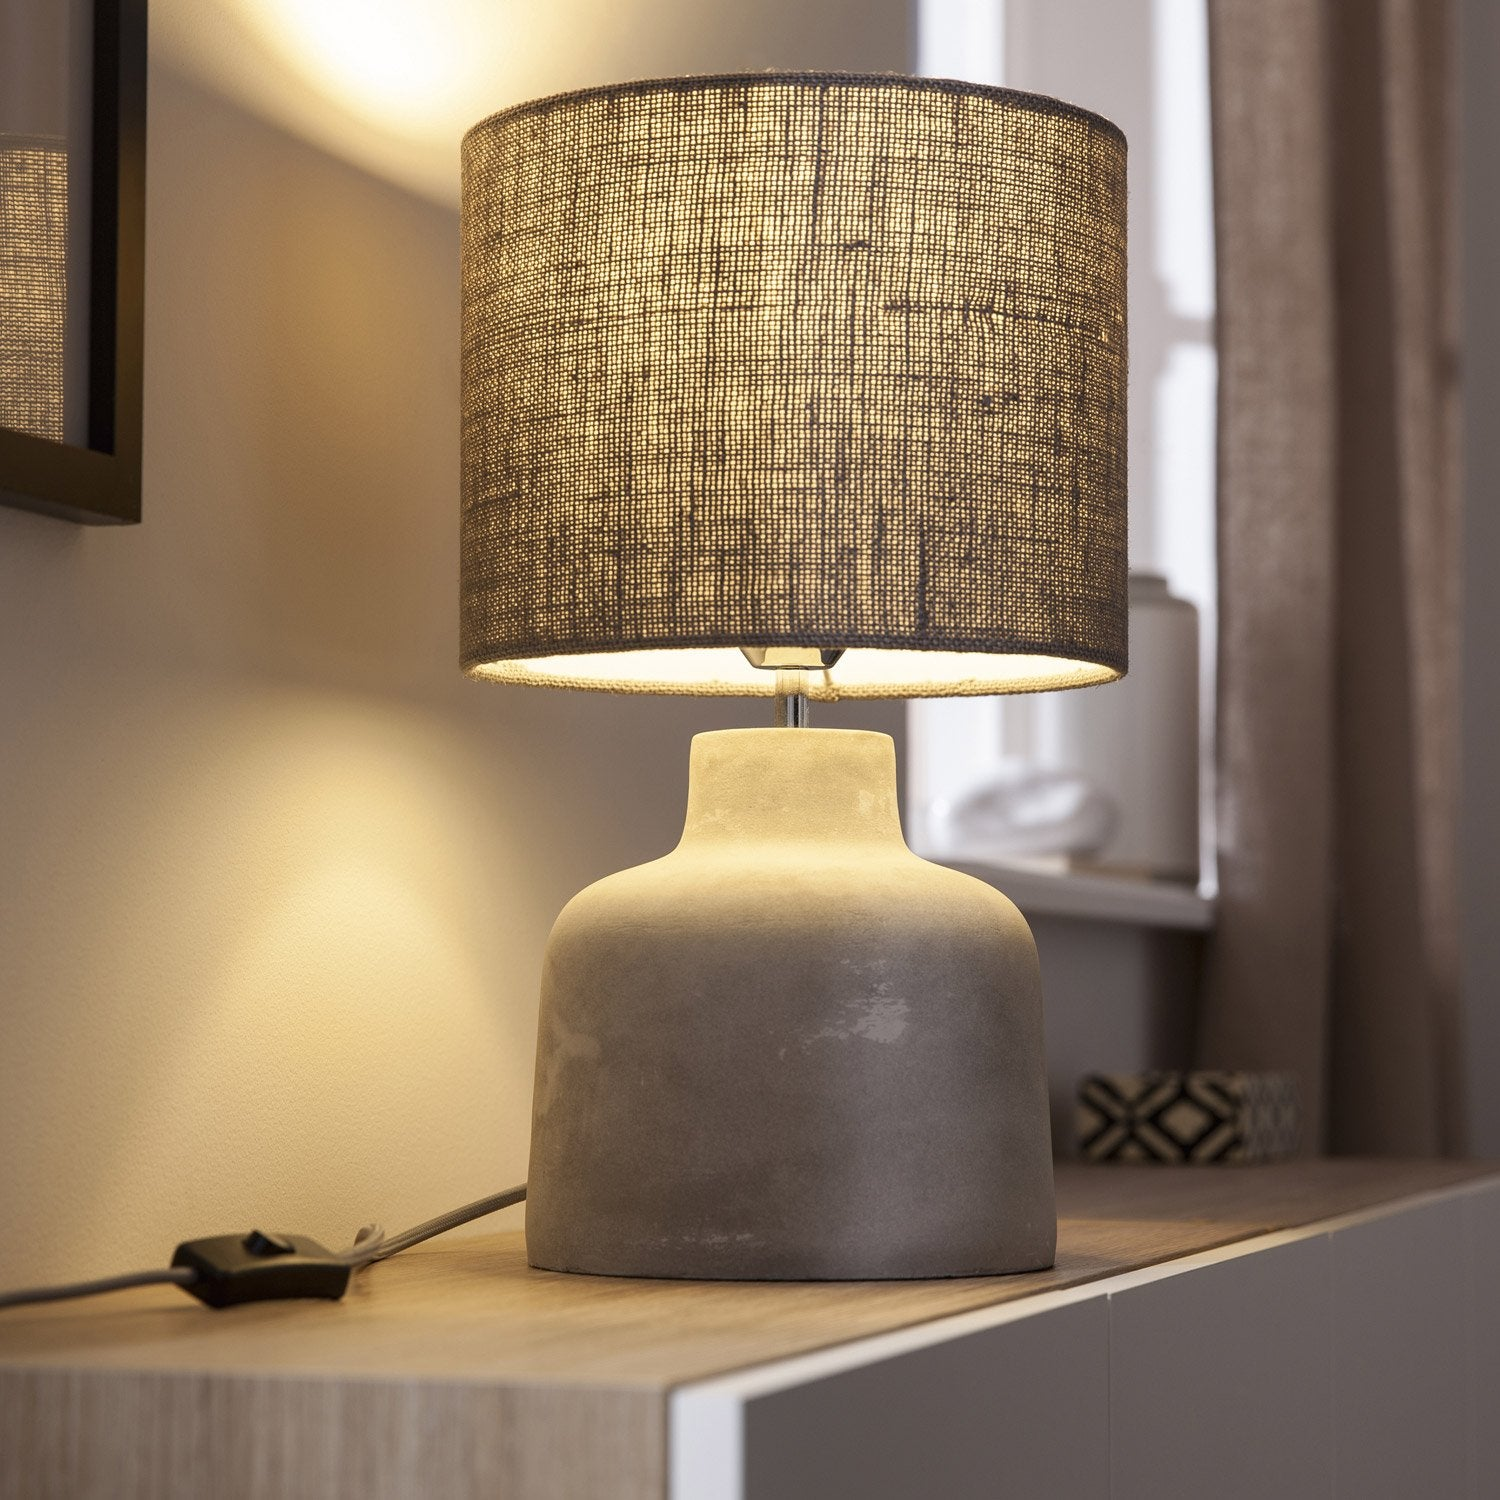 Lampe madison seynave tissu gris 40 w leroy merlin for Lampe a poser grise